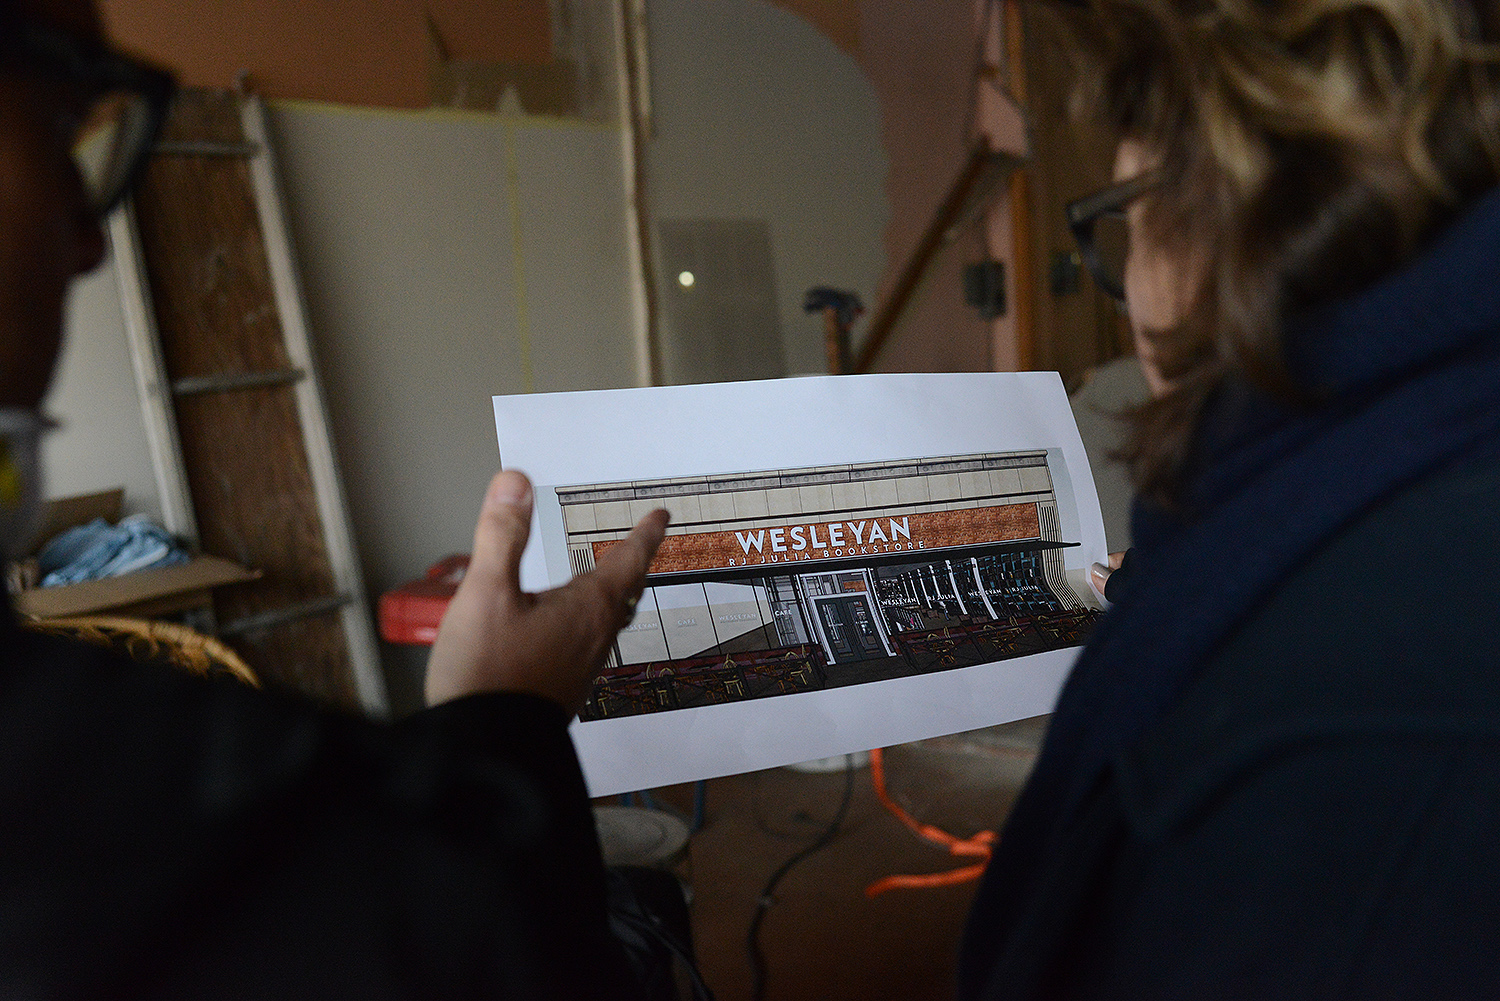 The new Wesleyan R.J. Julia Bookstore, located at 413 Main Street, is under construction and is due to open in May. The bookstore will be operated by R.J. Julia Booksellers, the nationally-known independent bookstore in Madison, Conn.